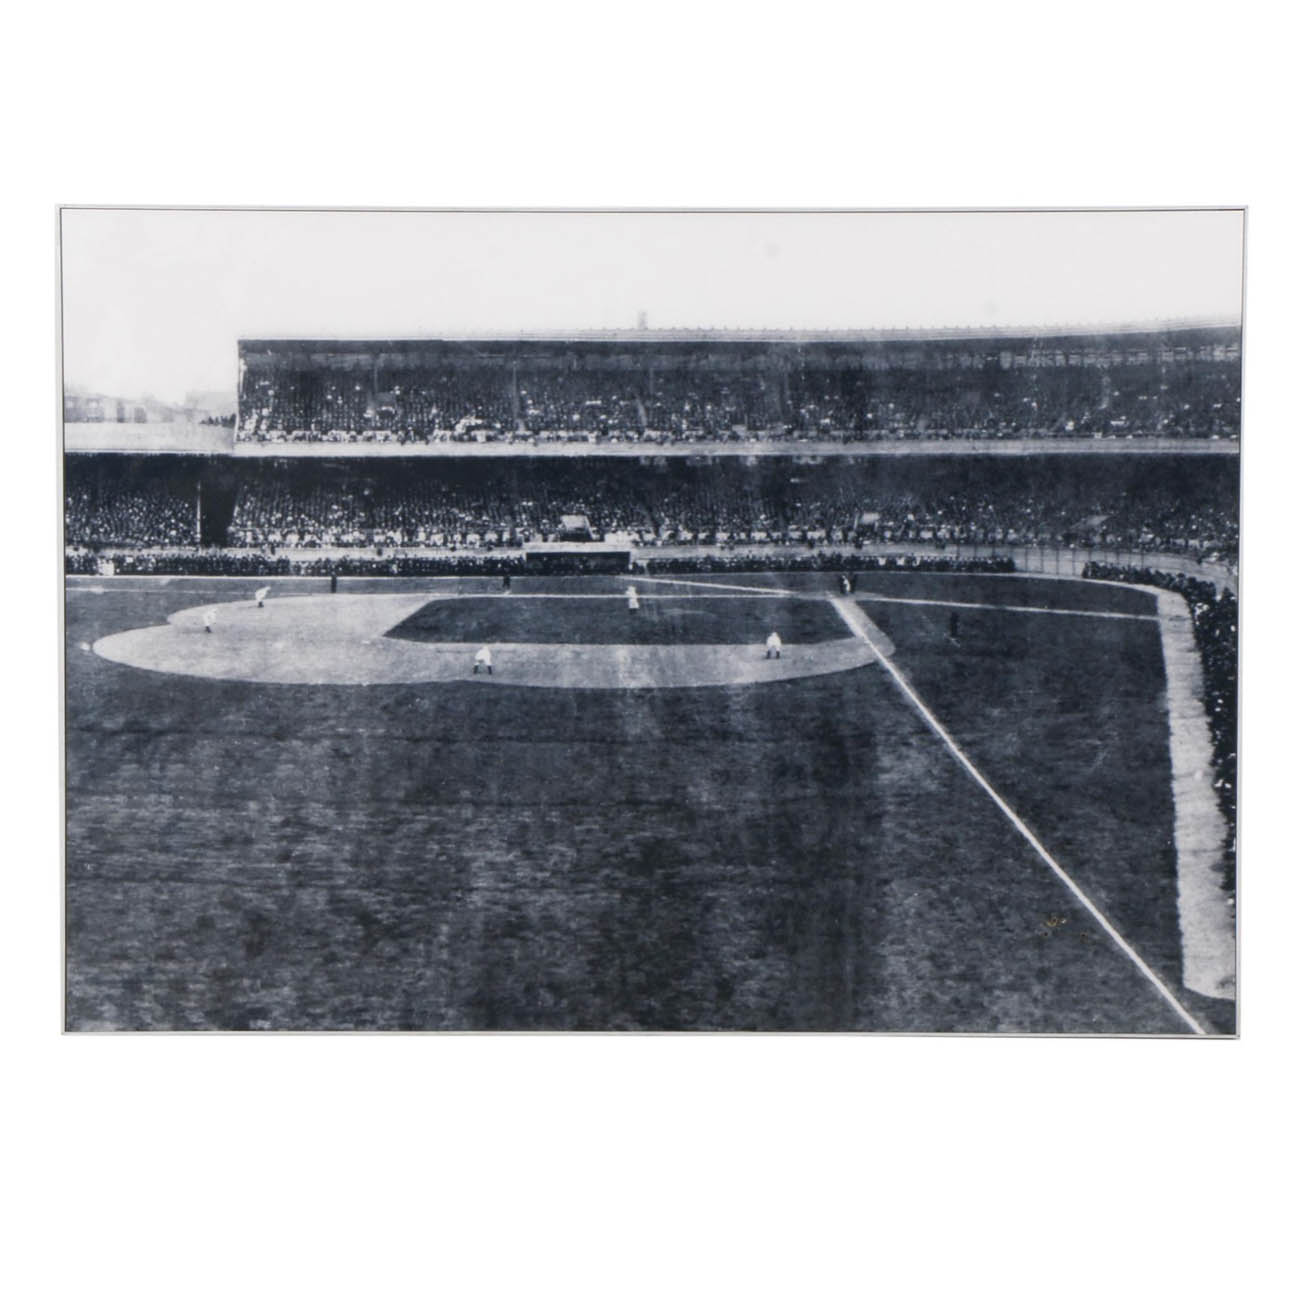 This large black-and-white canvas print of an early picture of Redland/Crosley Field. The stadium was built in 1912 and closed in 1970. The item is 60.5 inches wide and 42.5 inches tall and comes with a metal frame. / Image courtesy of Everything But The House (EBTH) // Published: 12.6.18